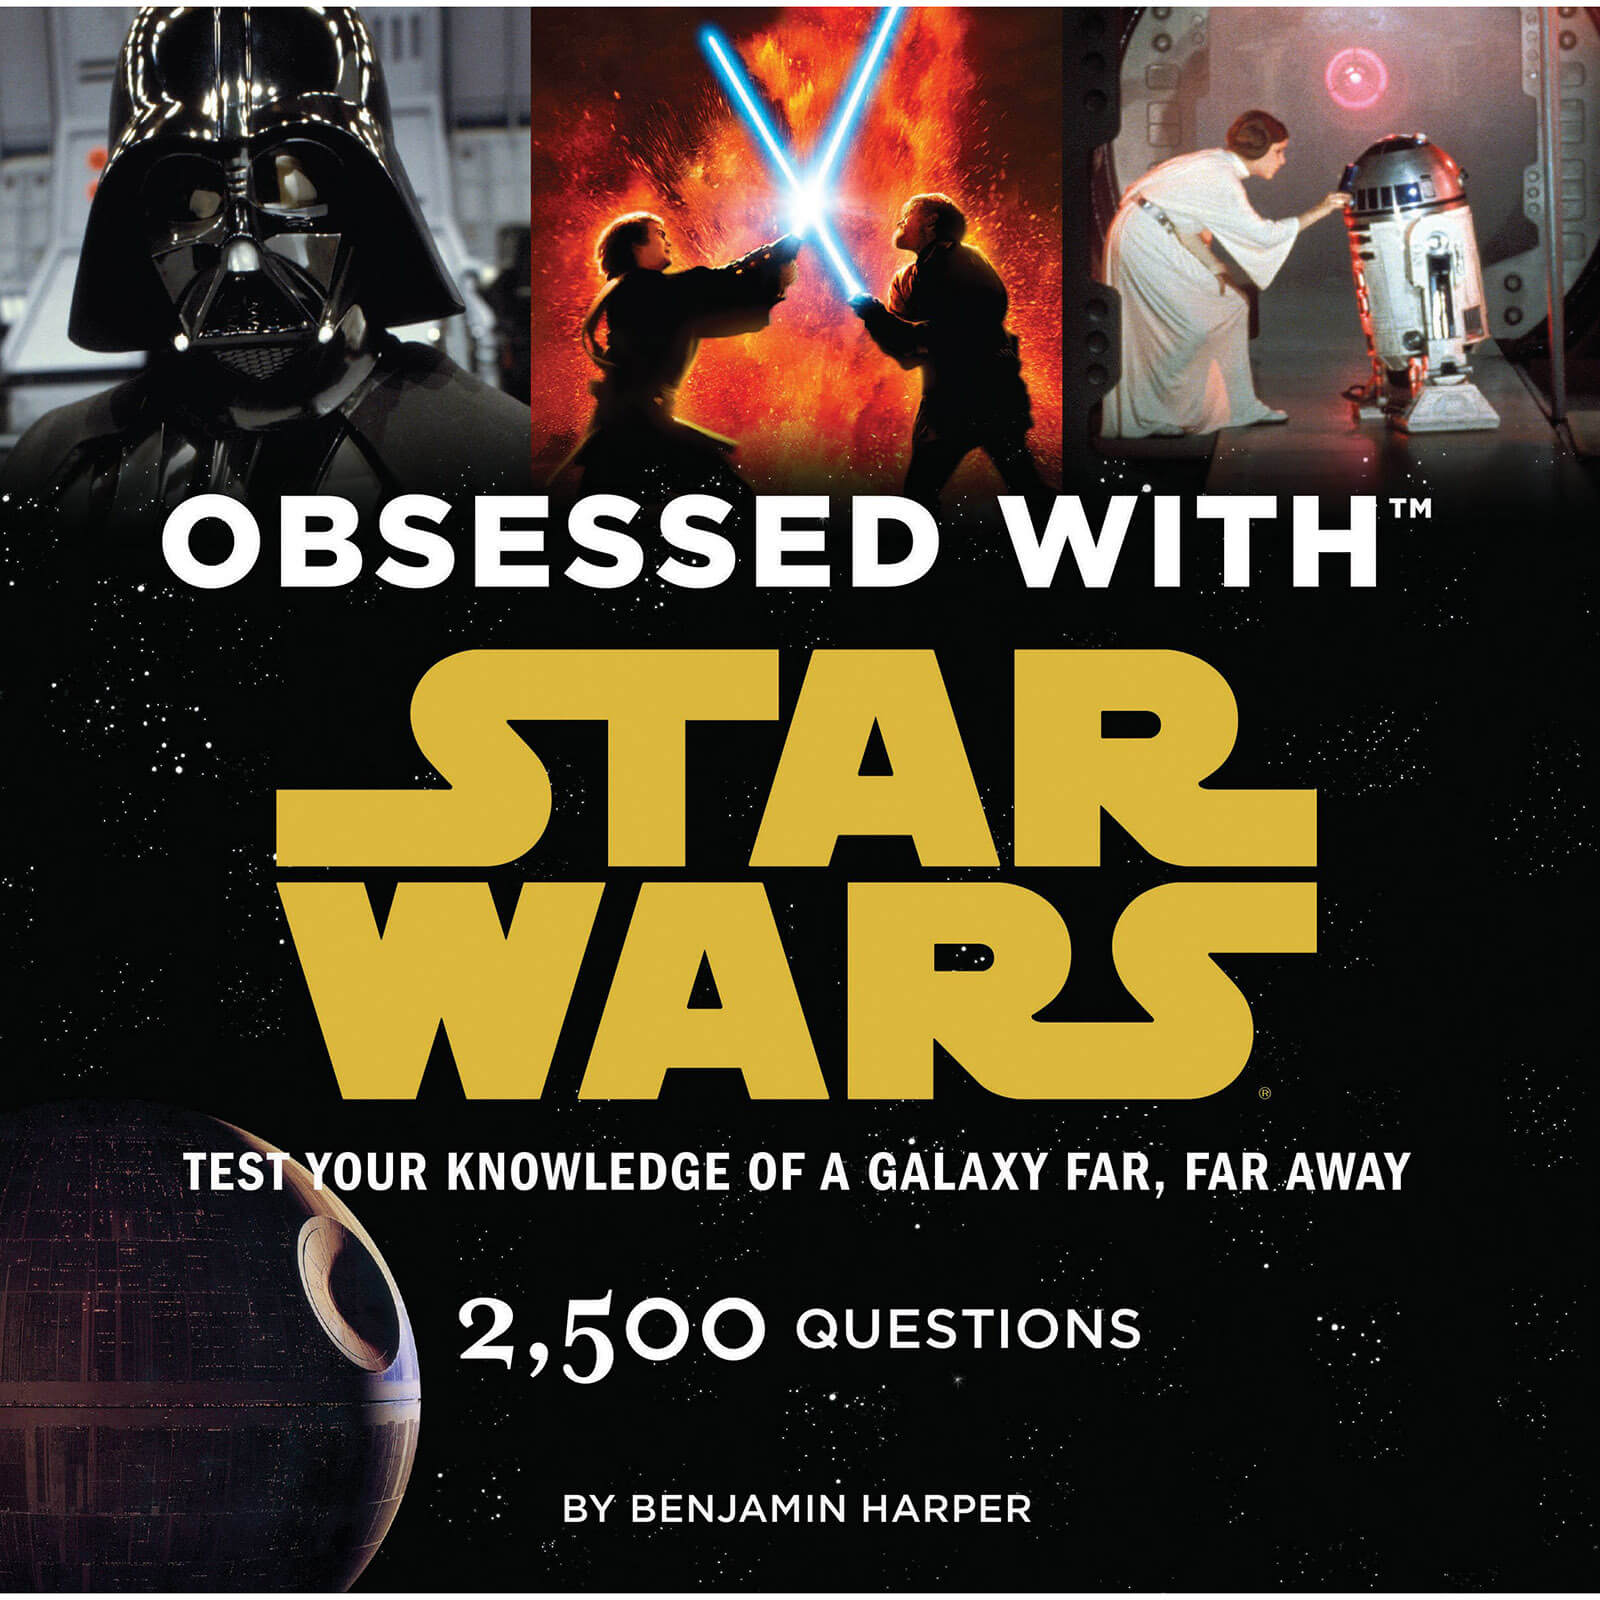 Obsessed with Star Wars: 2,500 Questions Paperback Book